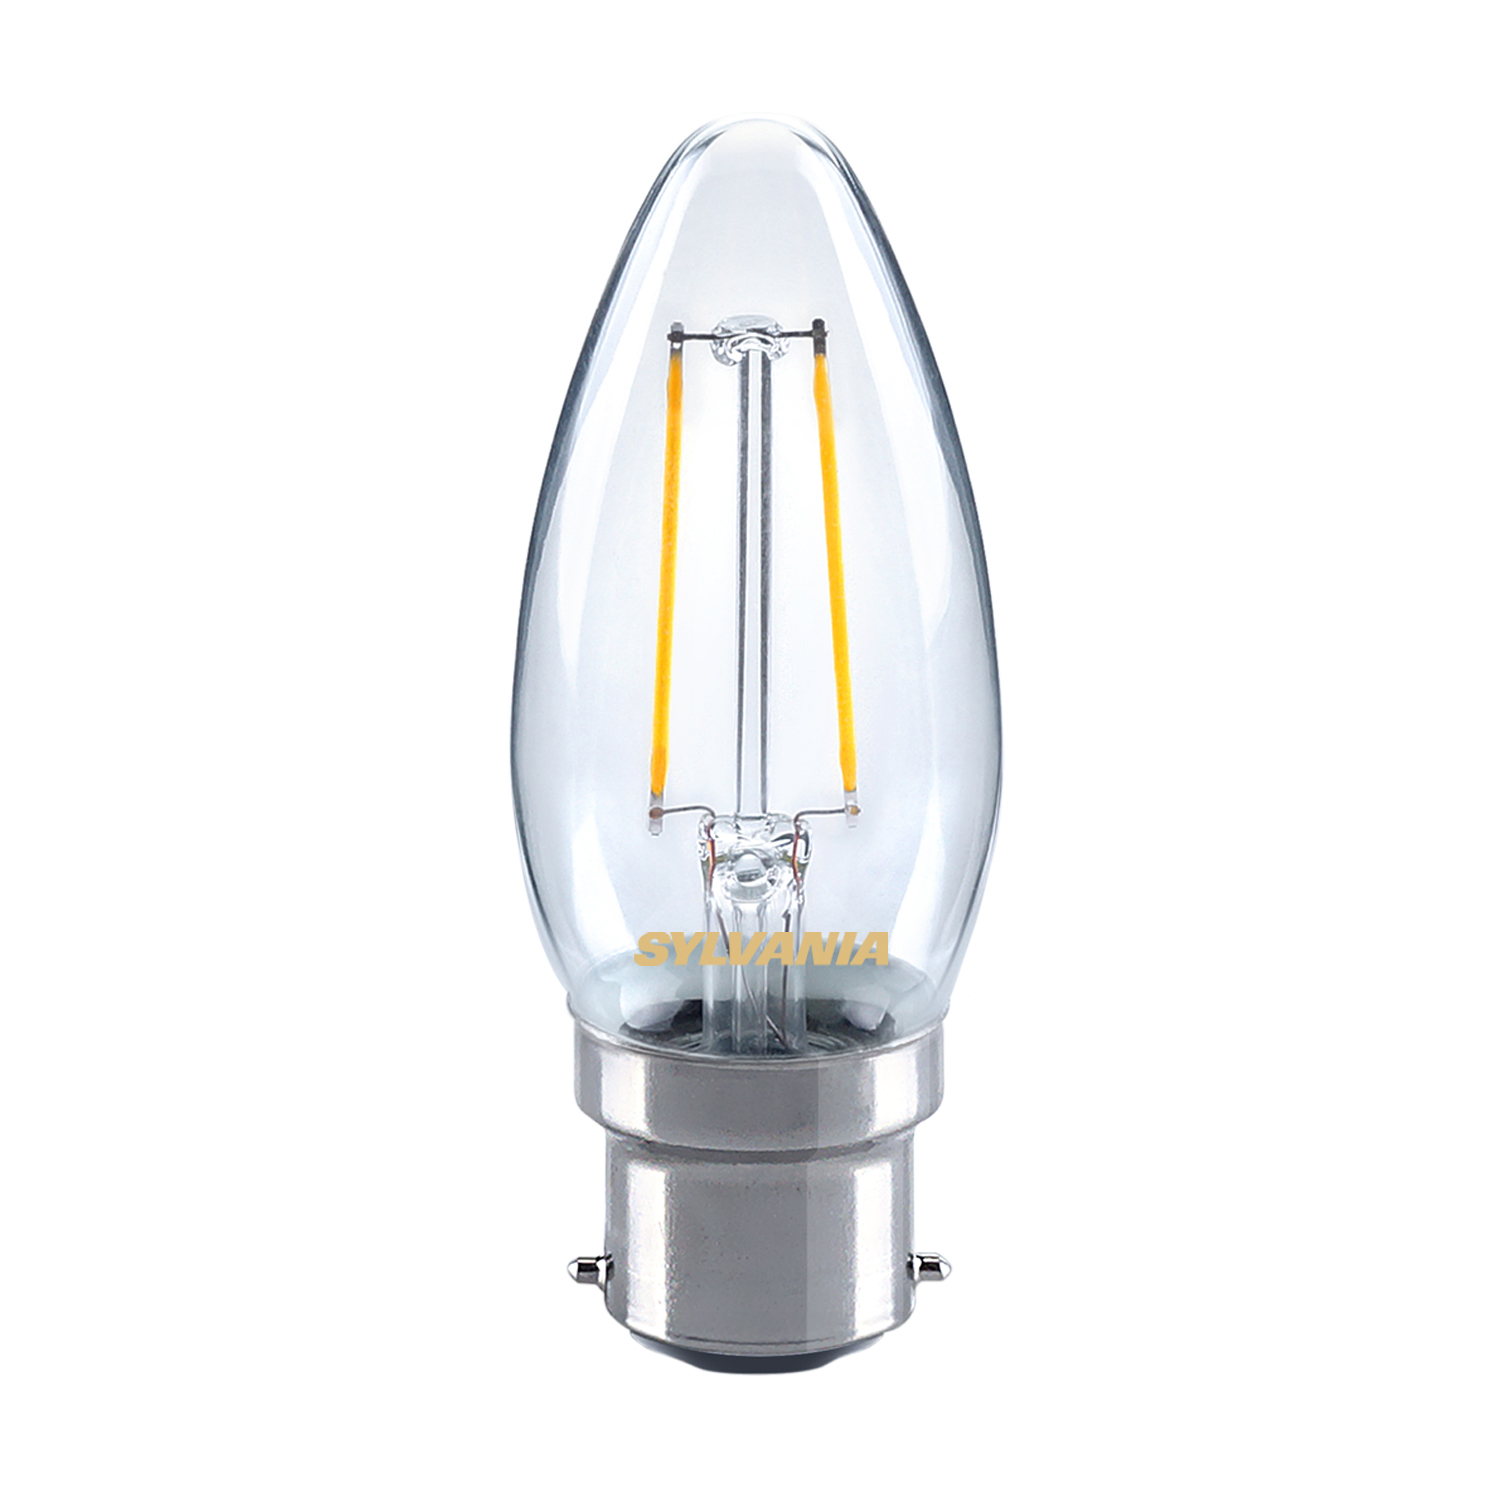 Sylvania 2 5w Led Traditional Candle Light Bulb B22 Bc Warm White 2700k Liminaires